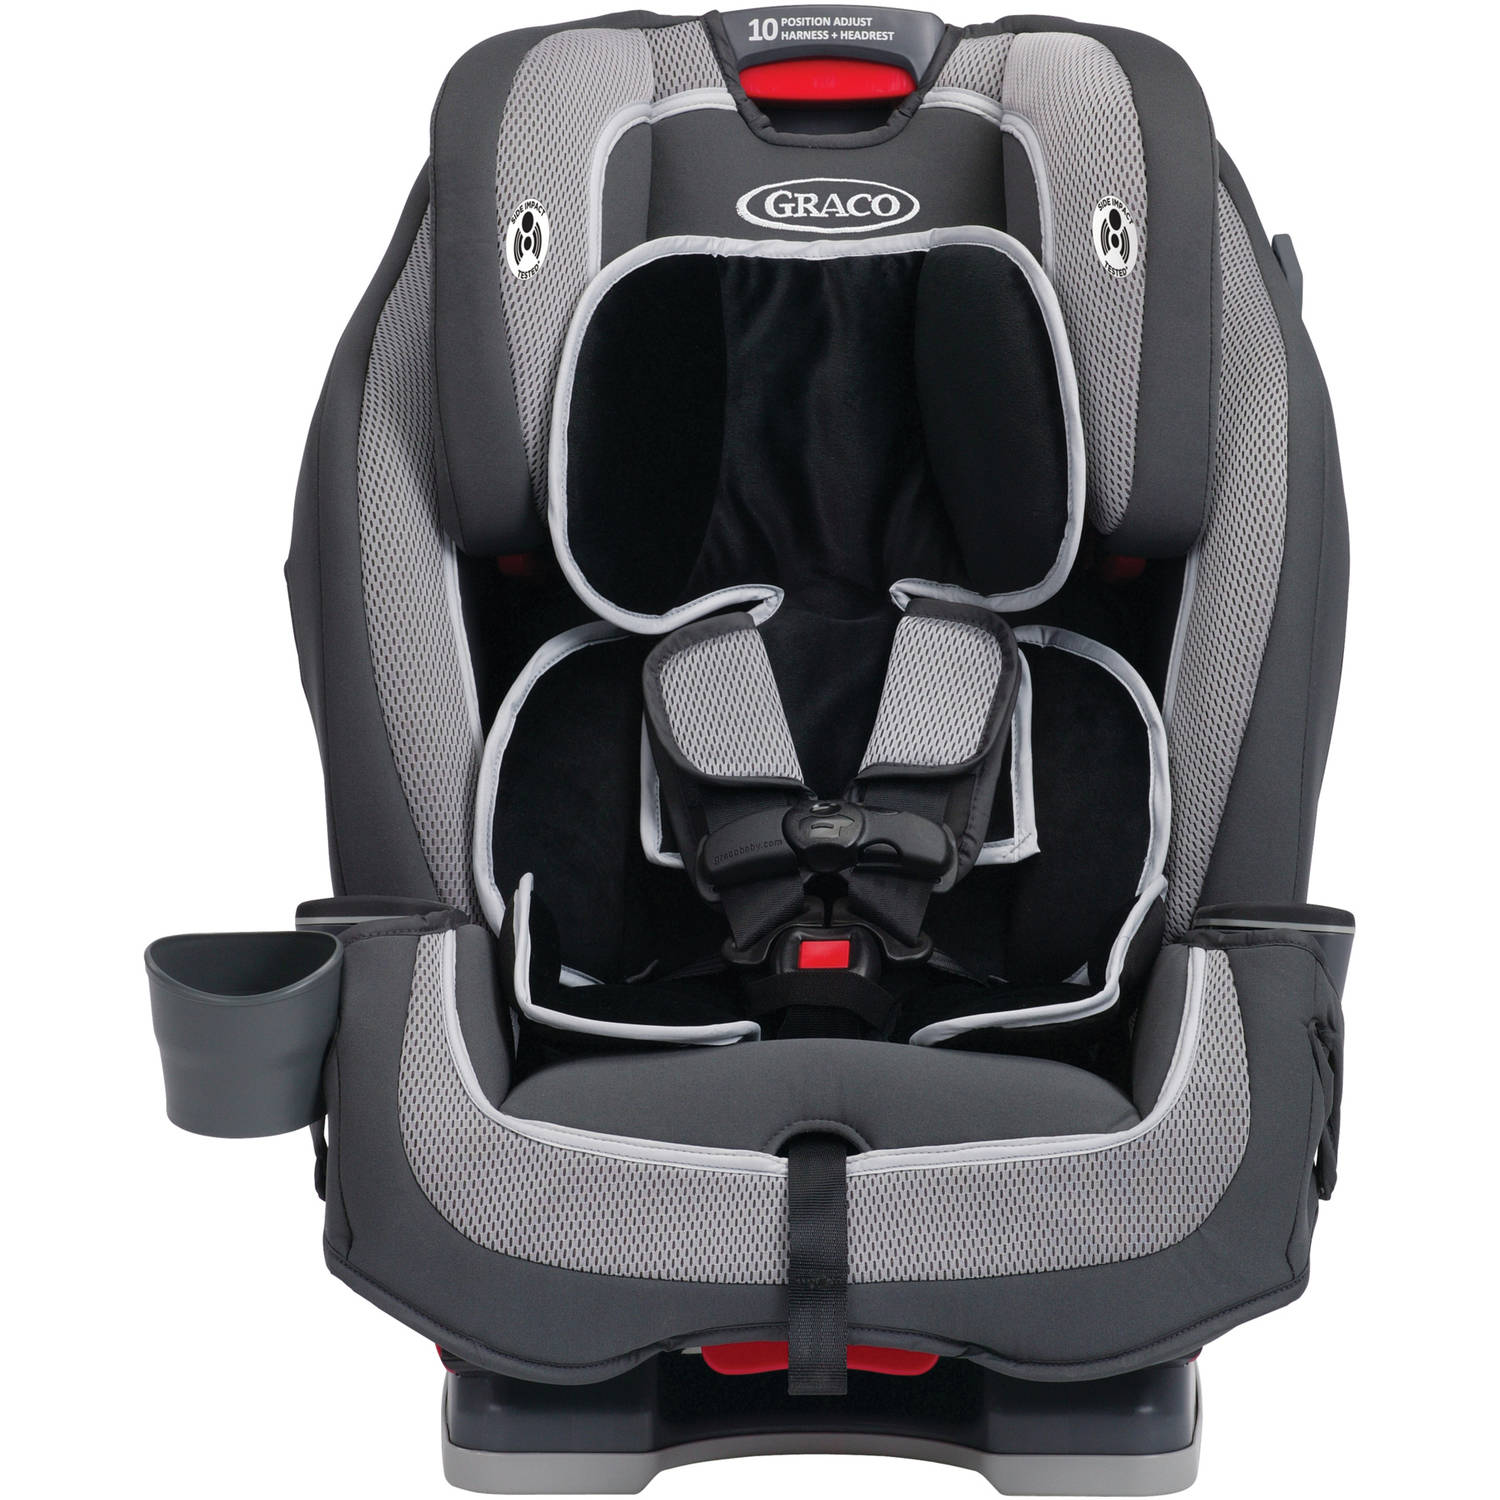 Graco MILESTONE All in 1 Convertible Car Seat Choose Your Pattern |